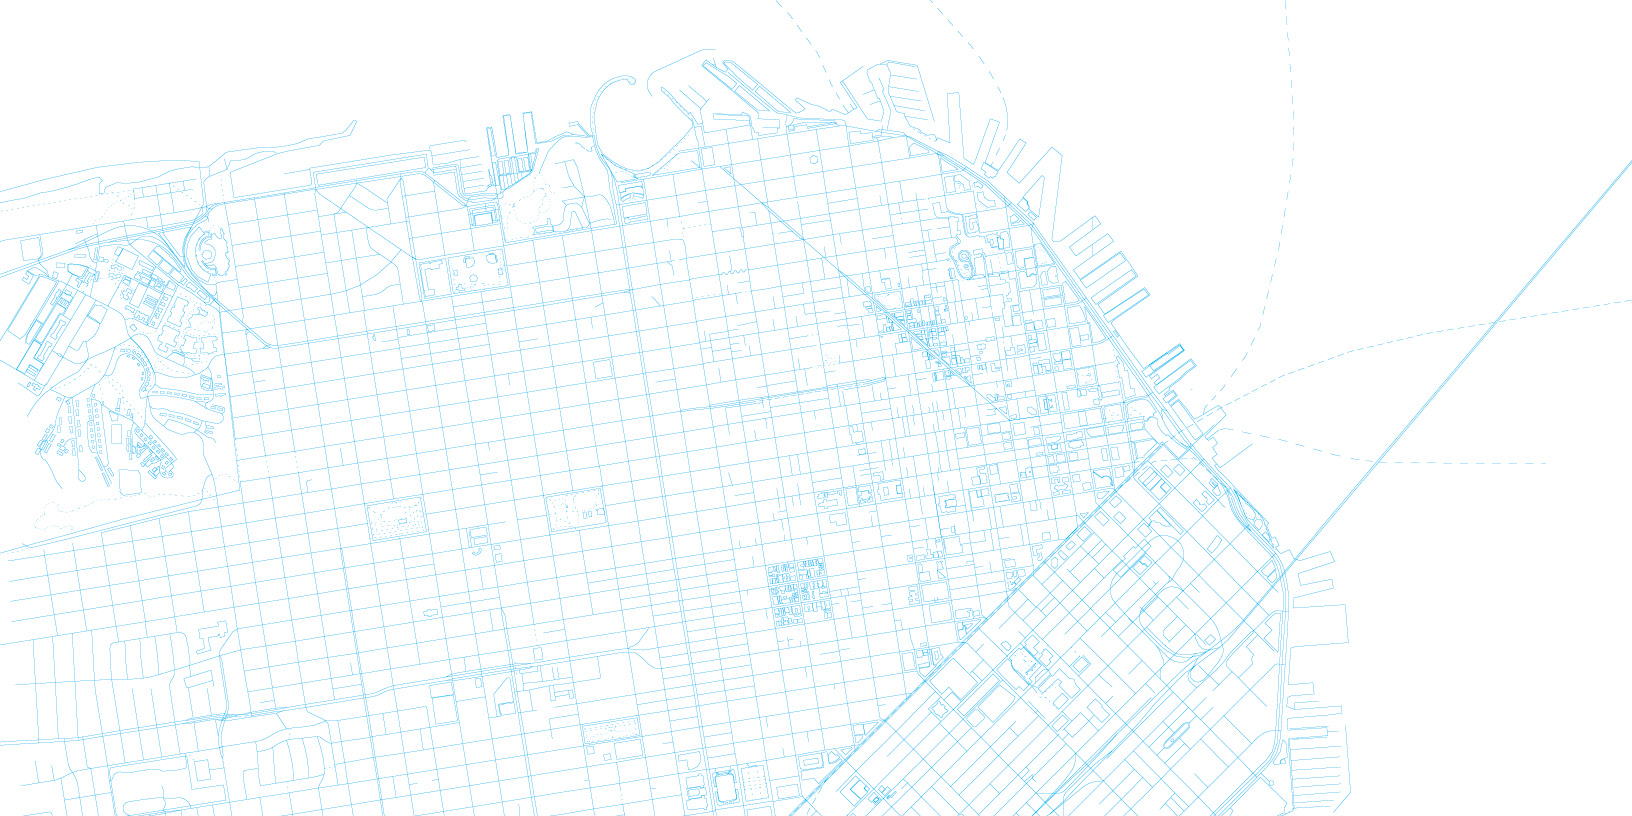 UnGRIDDED CITIES SAN FRANCISCO.jpg